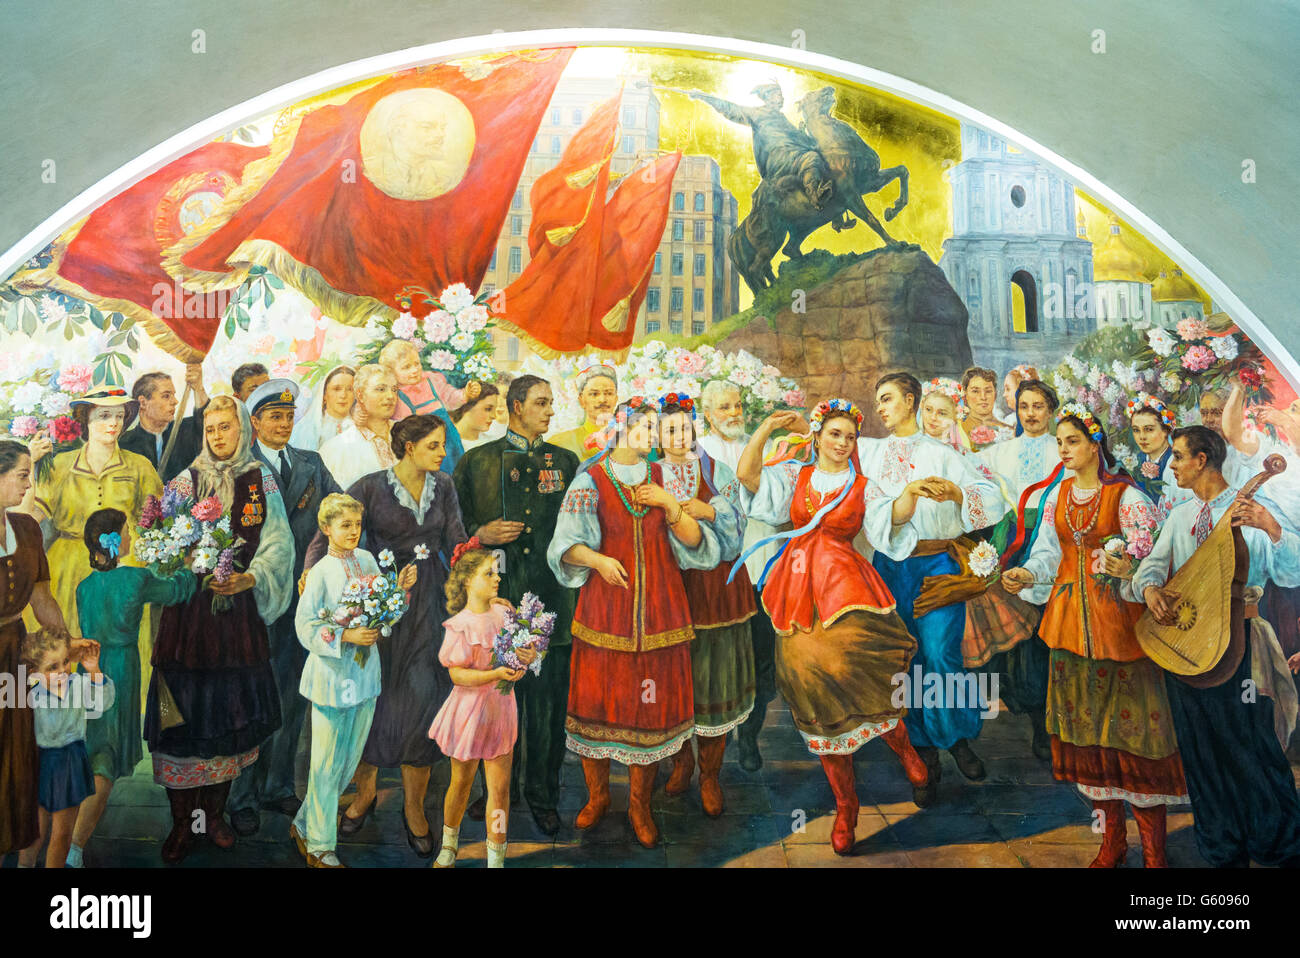 Russia, Moscow, art works in the subway stations - Stock Image